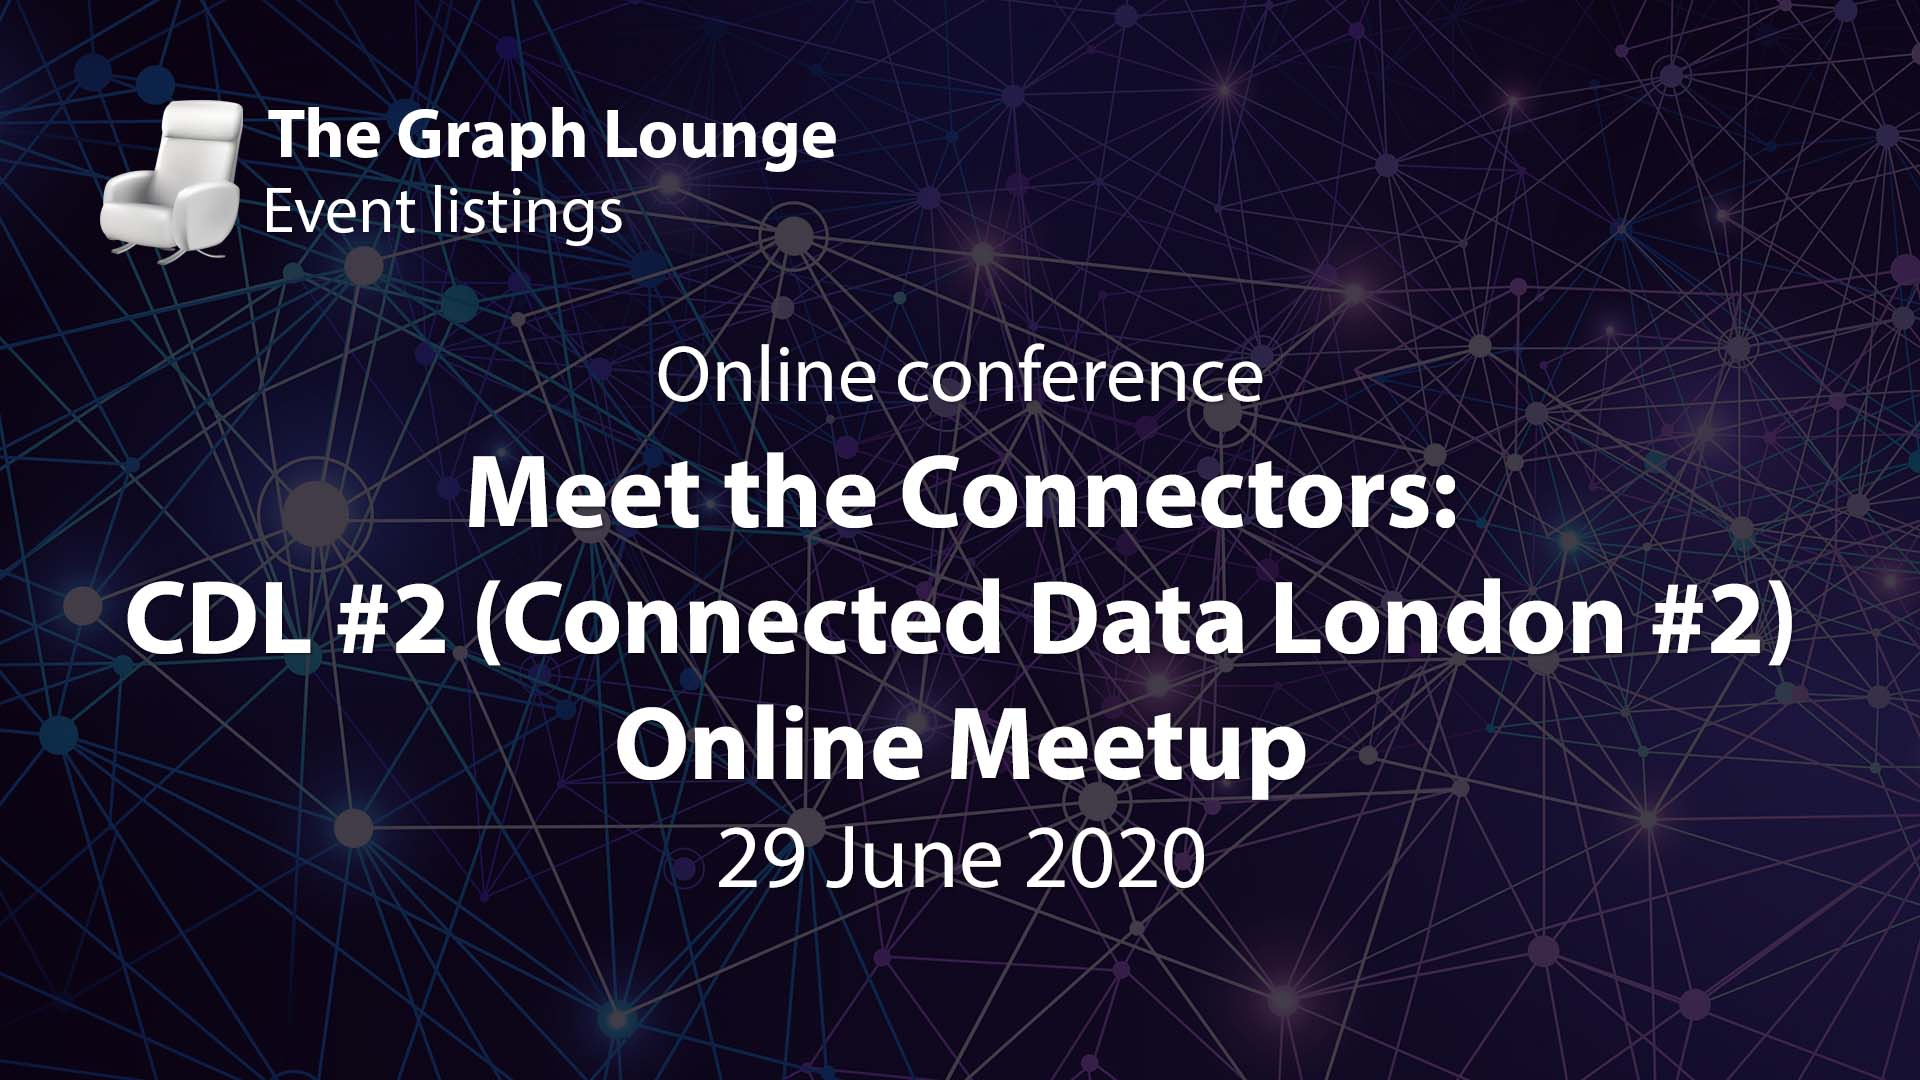 Meet the Connectors: CDL #2 (Connected Data London #2) Online Meetup